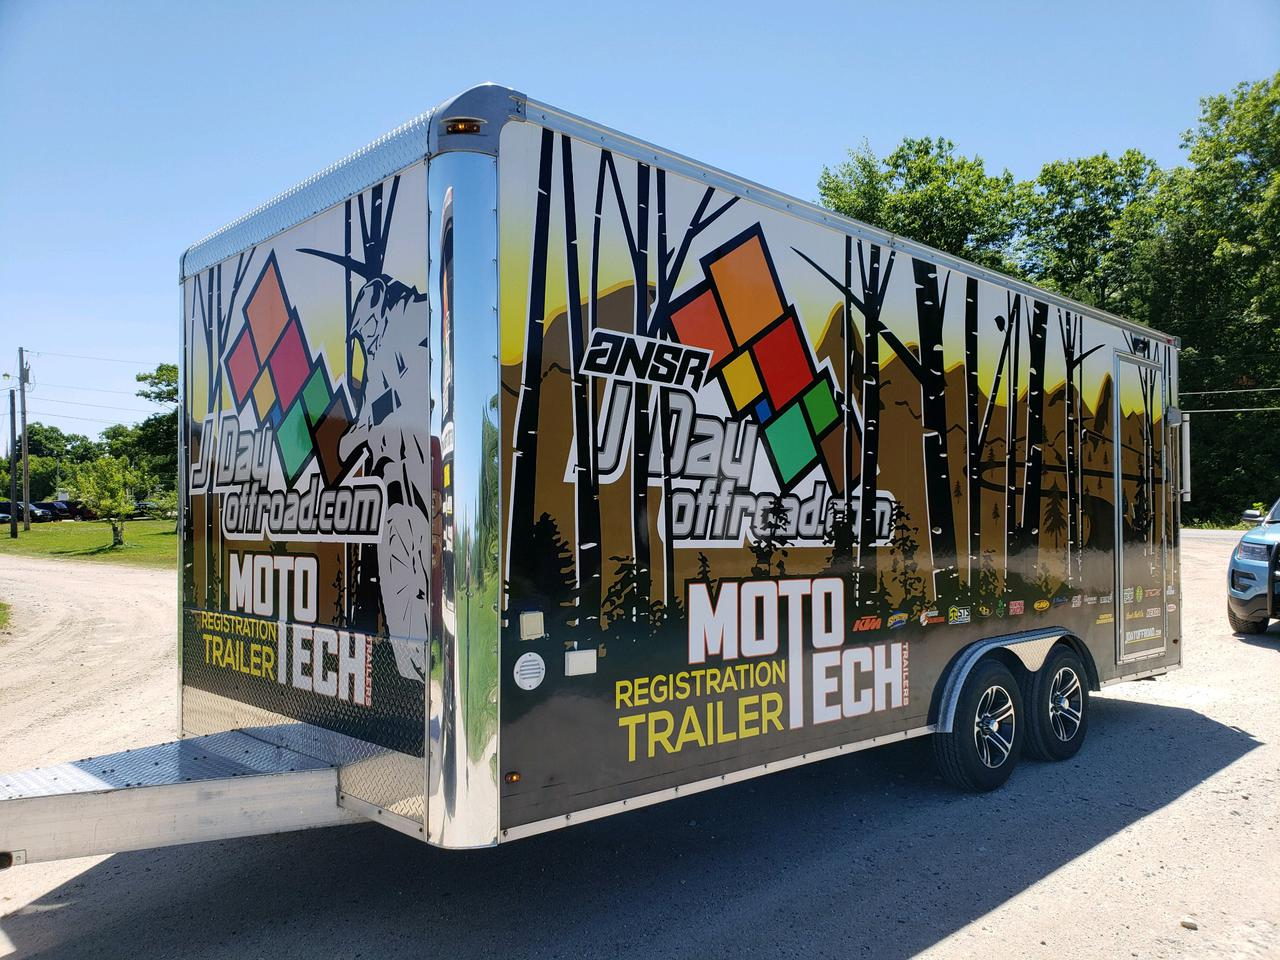 camper - moto tech trailers